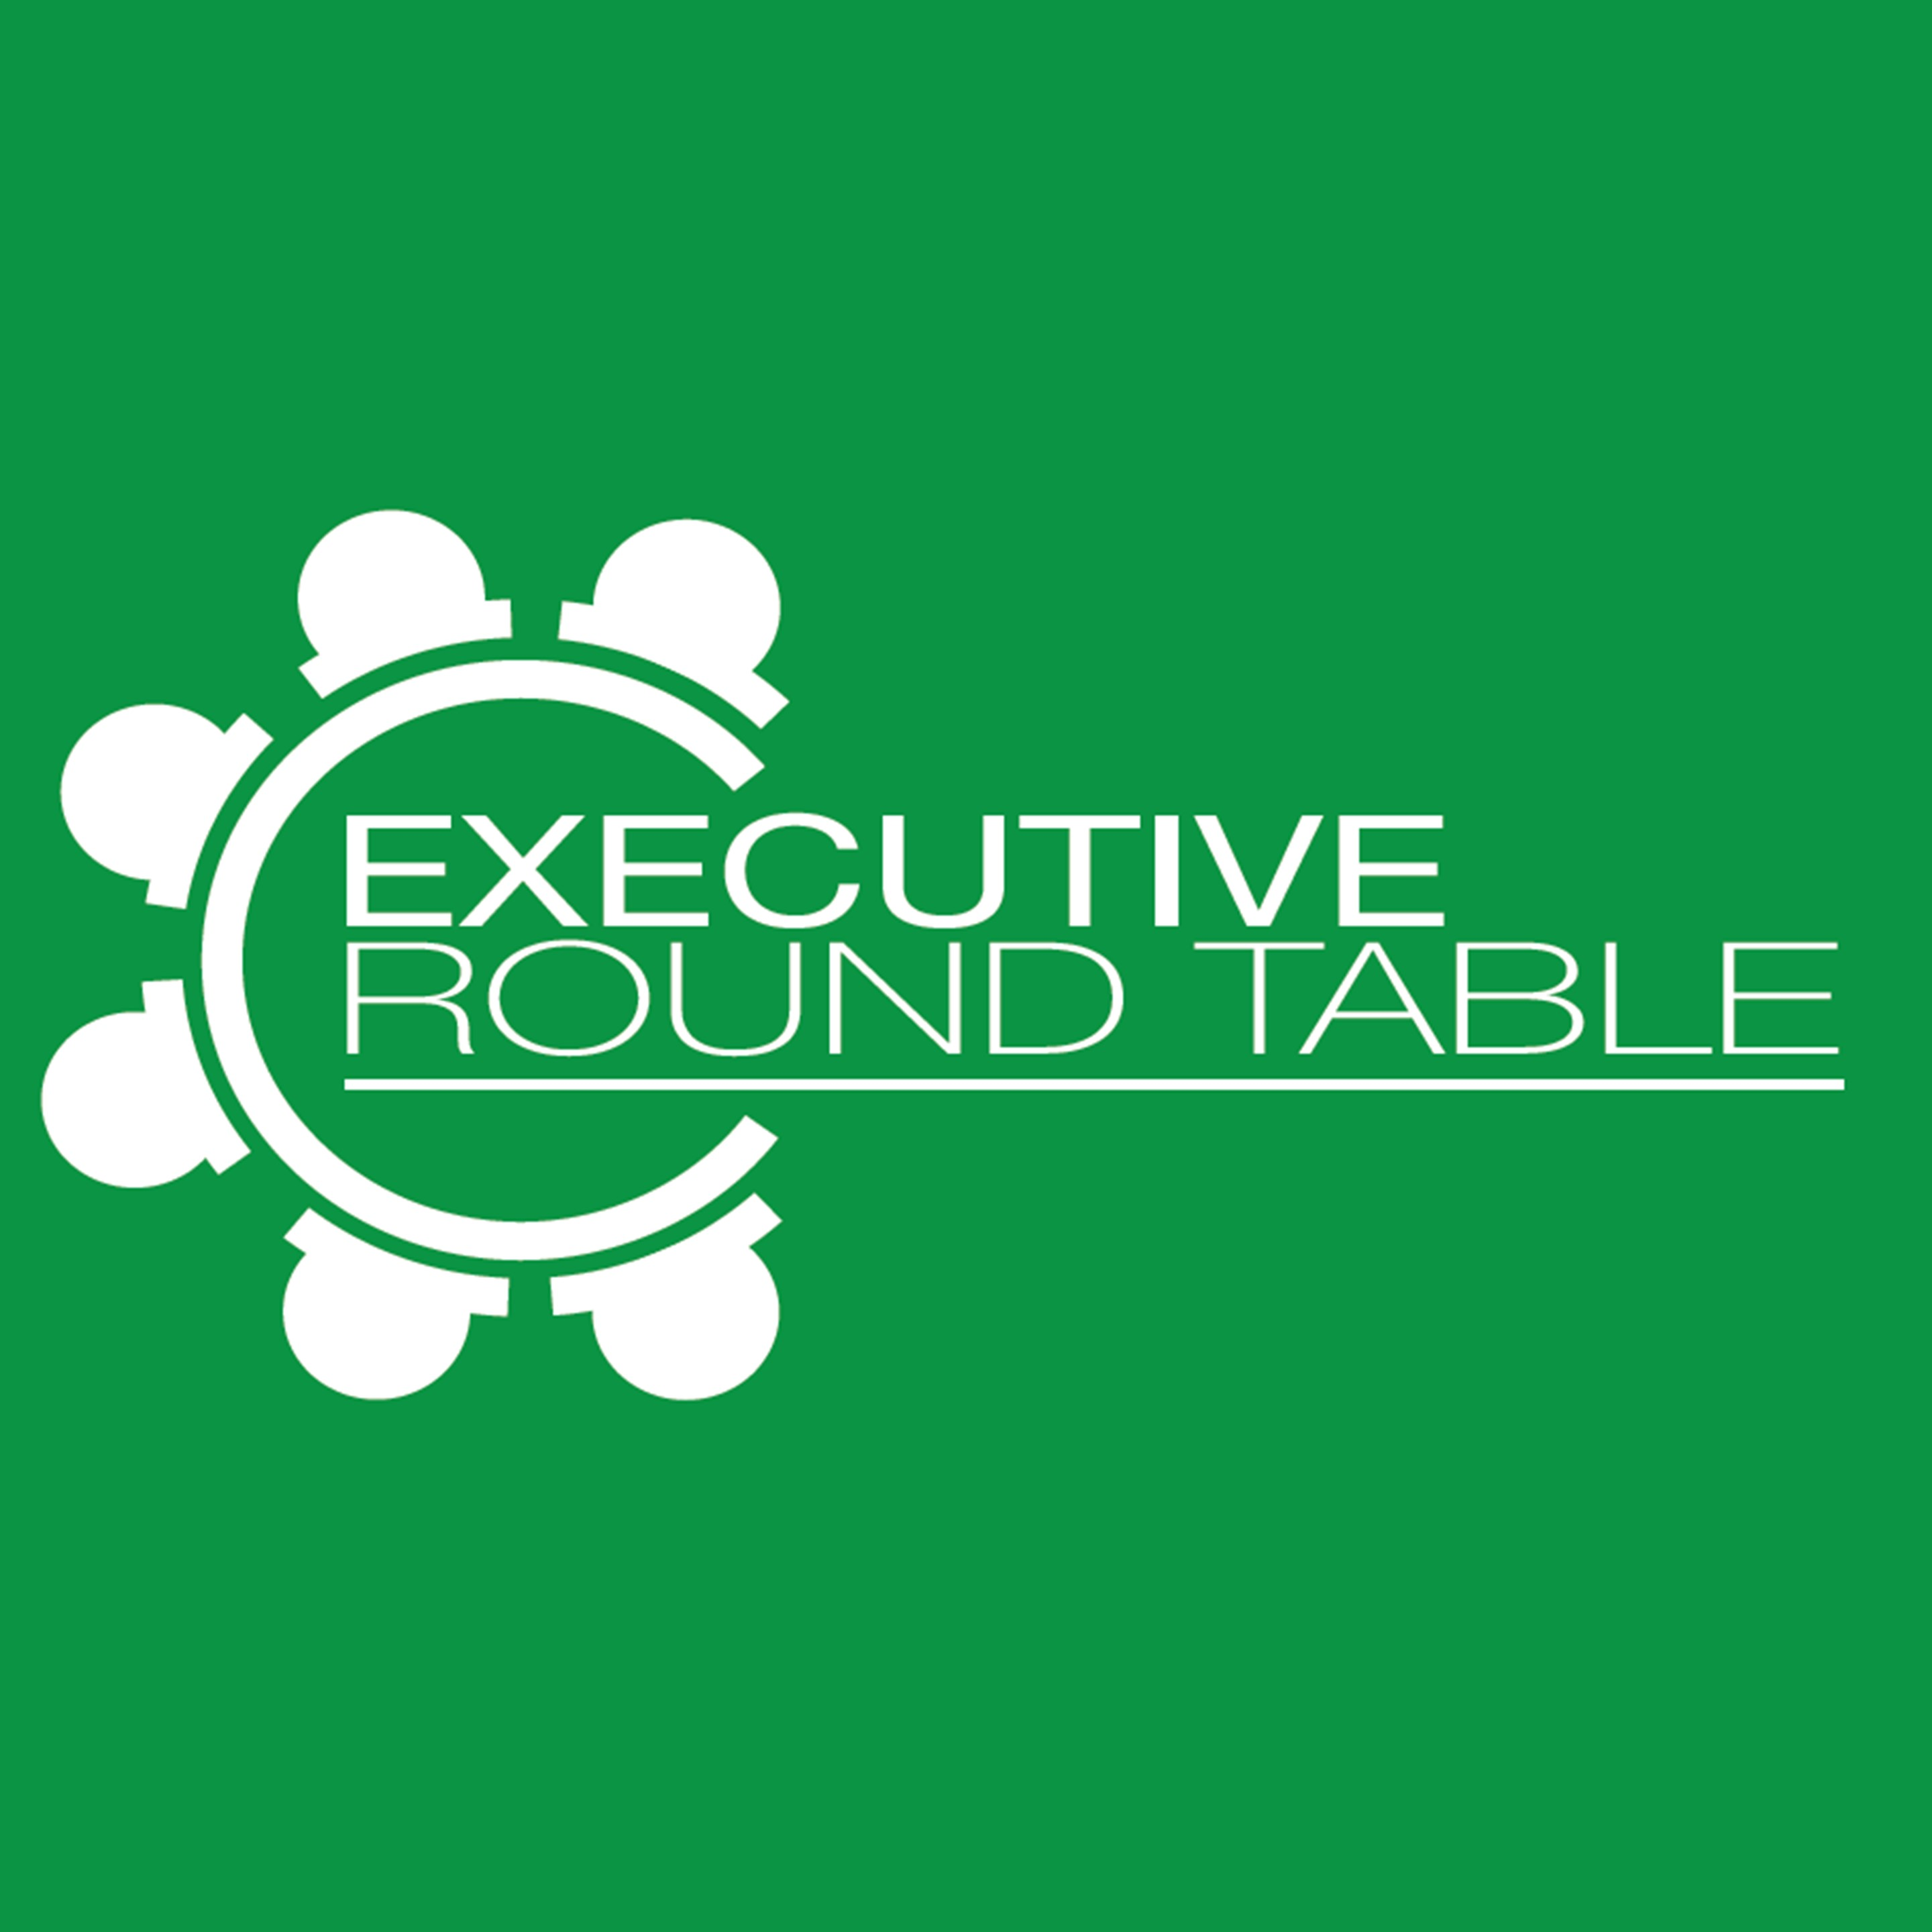 Green Executive Round Table Logo